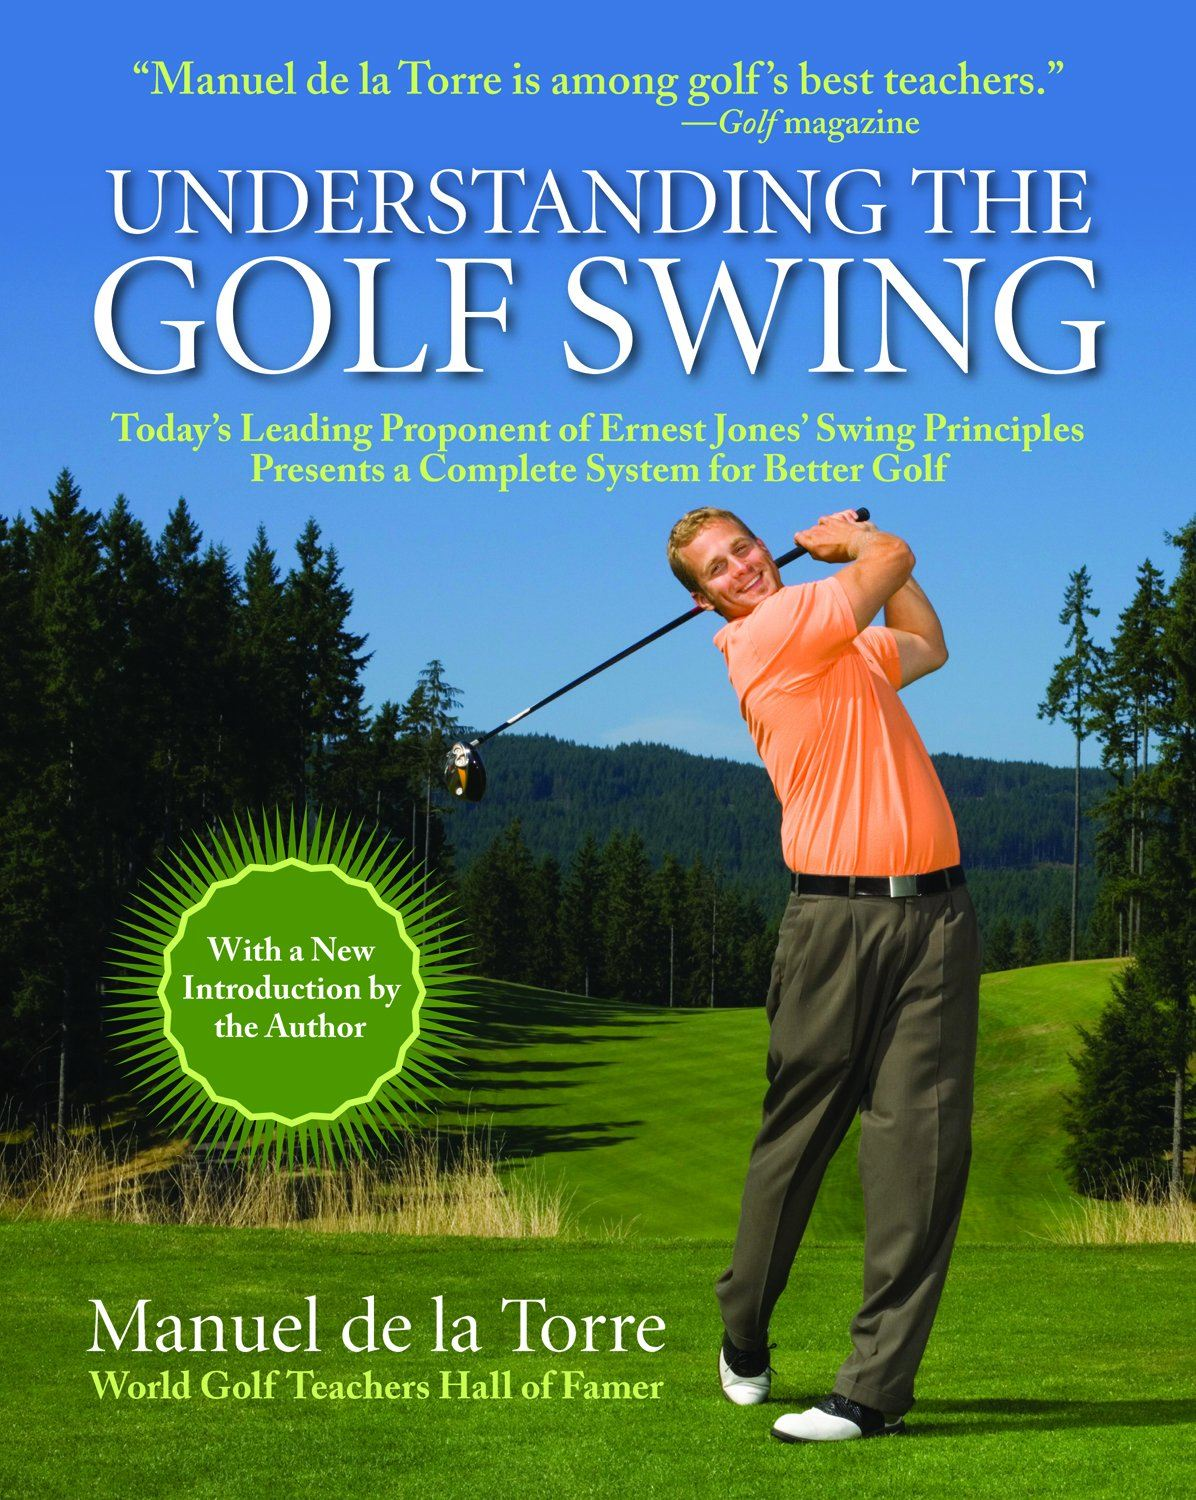 Understanding The Golf Swing: Today's Leading Proponent of Ernest Jones' Swing Principles Presents a Complete System for Better Golf By: Manuel de la Torre